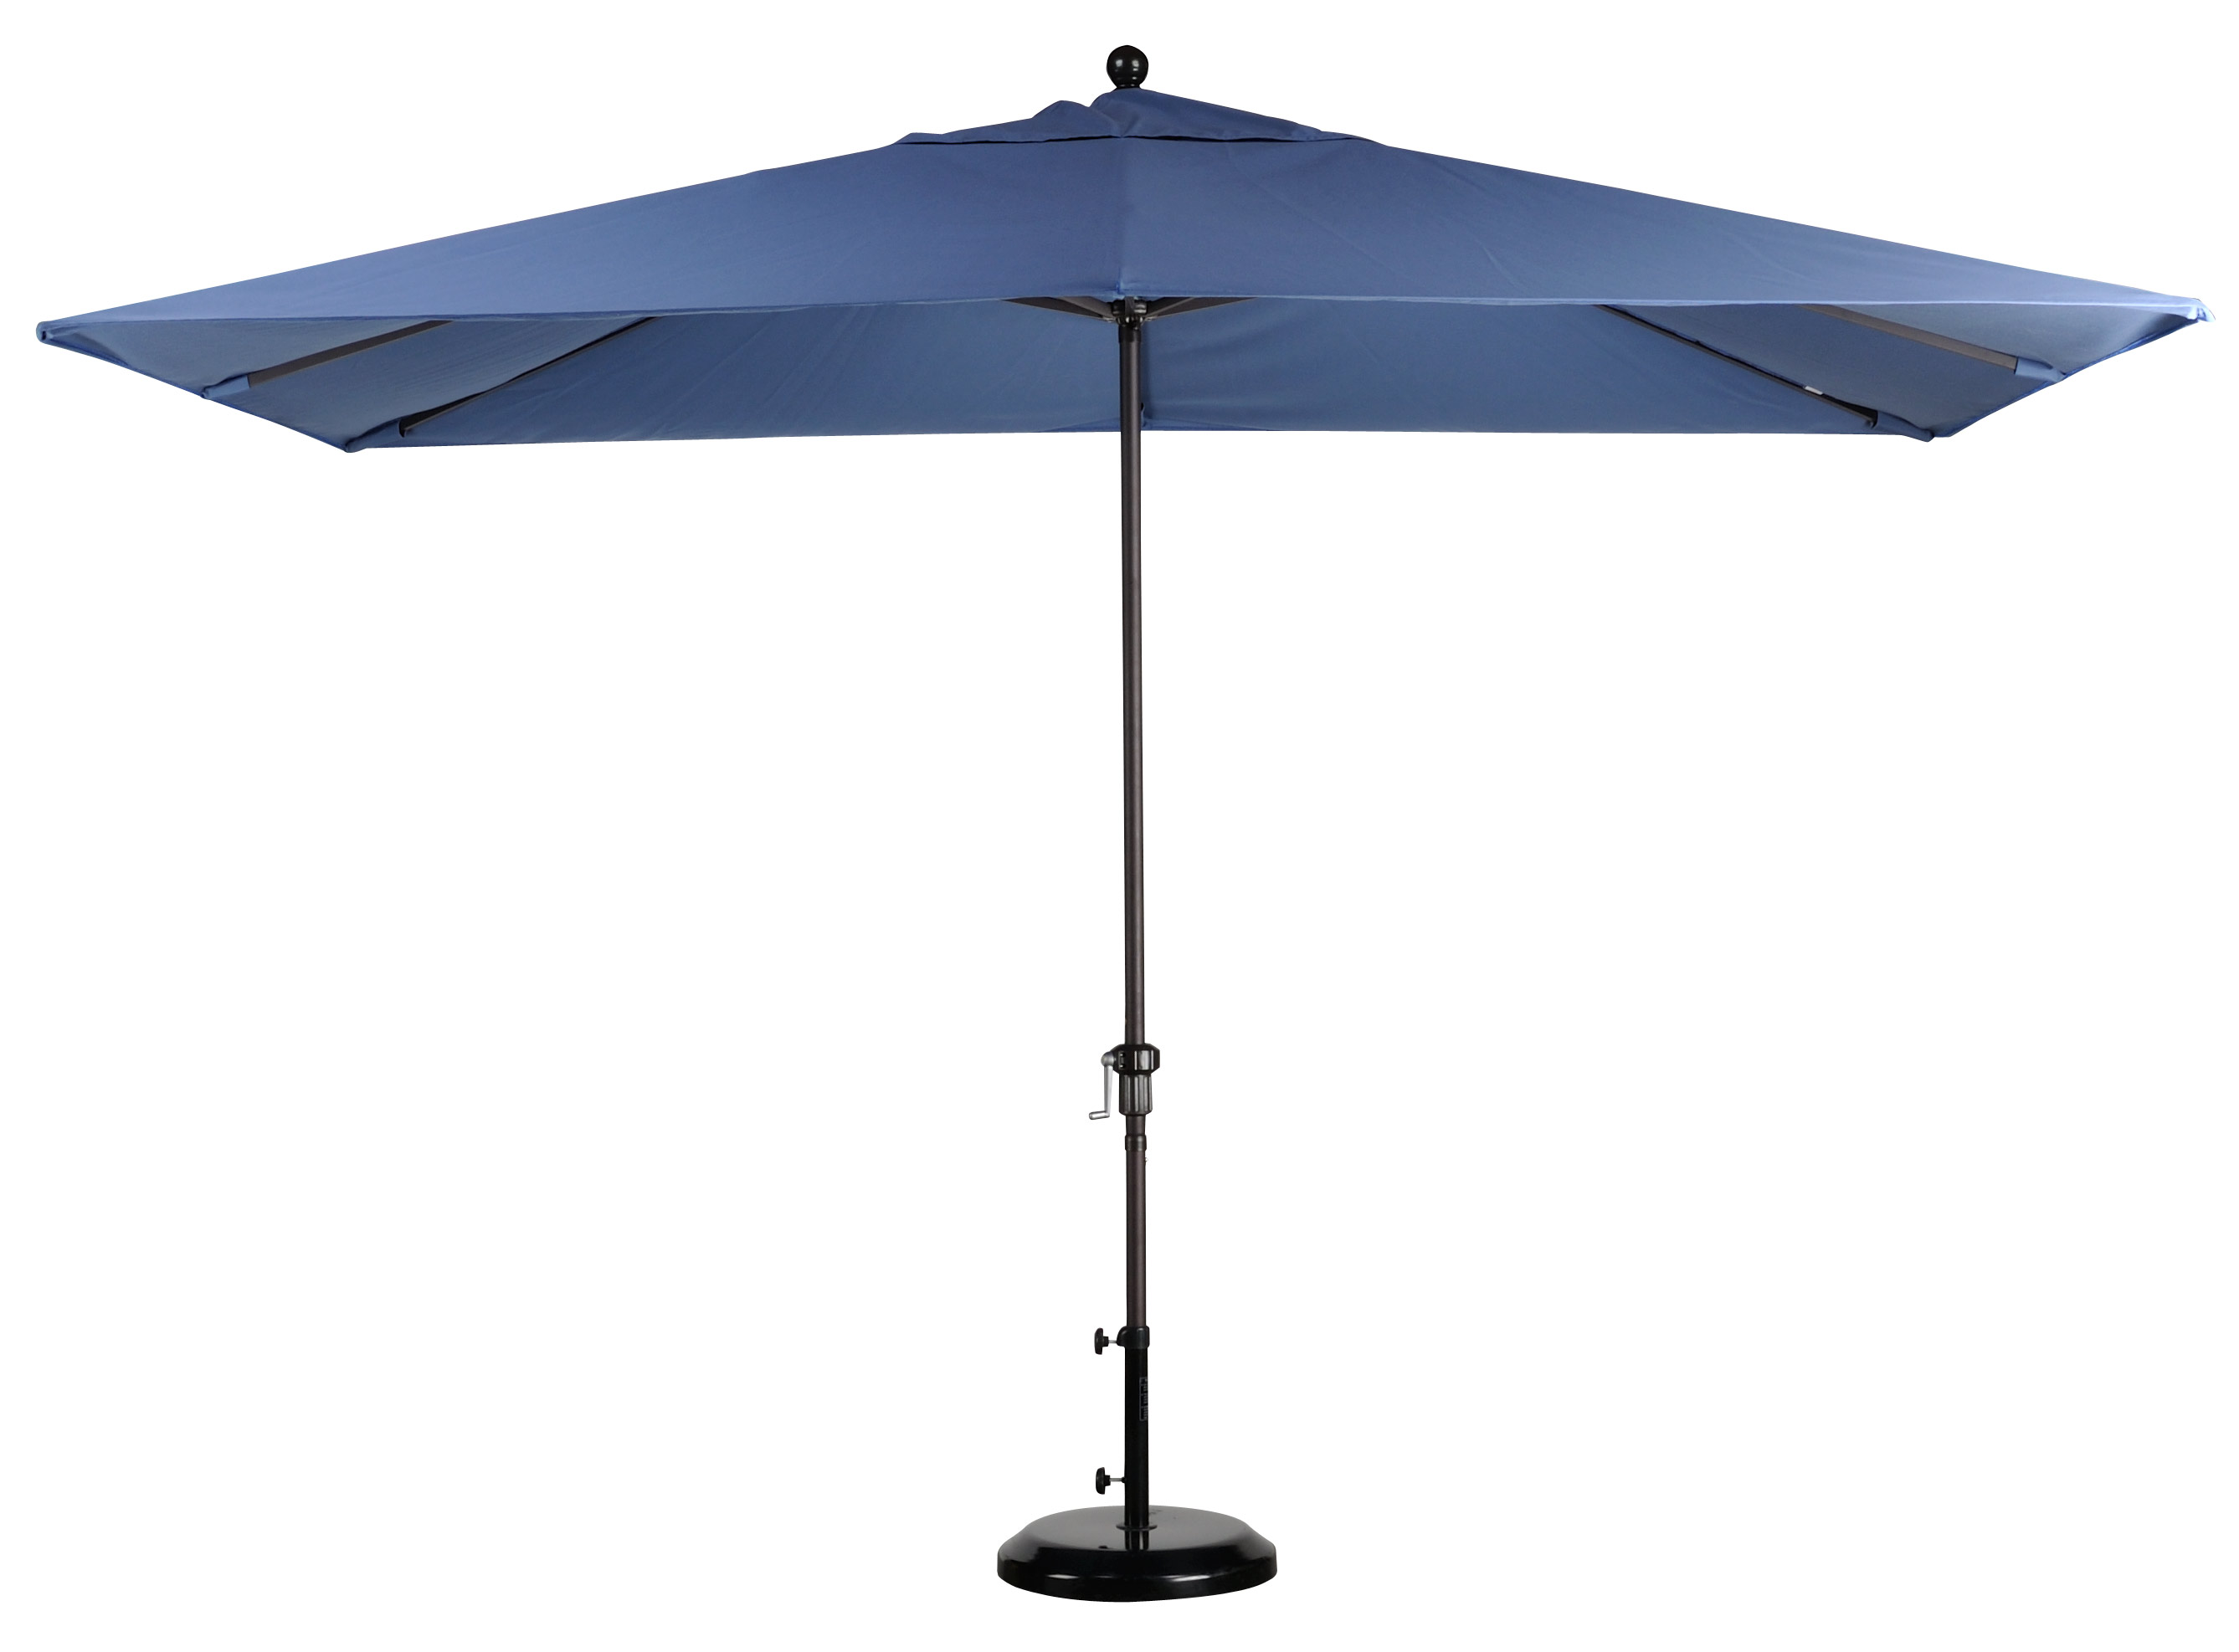 Patio umbrellas for sale patio umbrellas for sale for Balcony umbrella